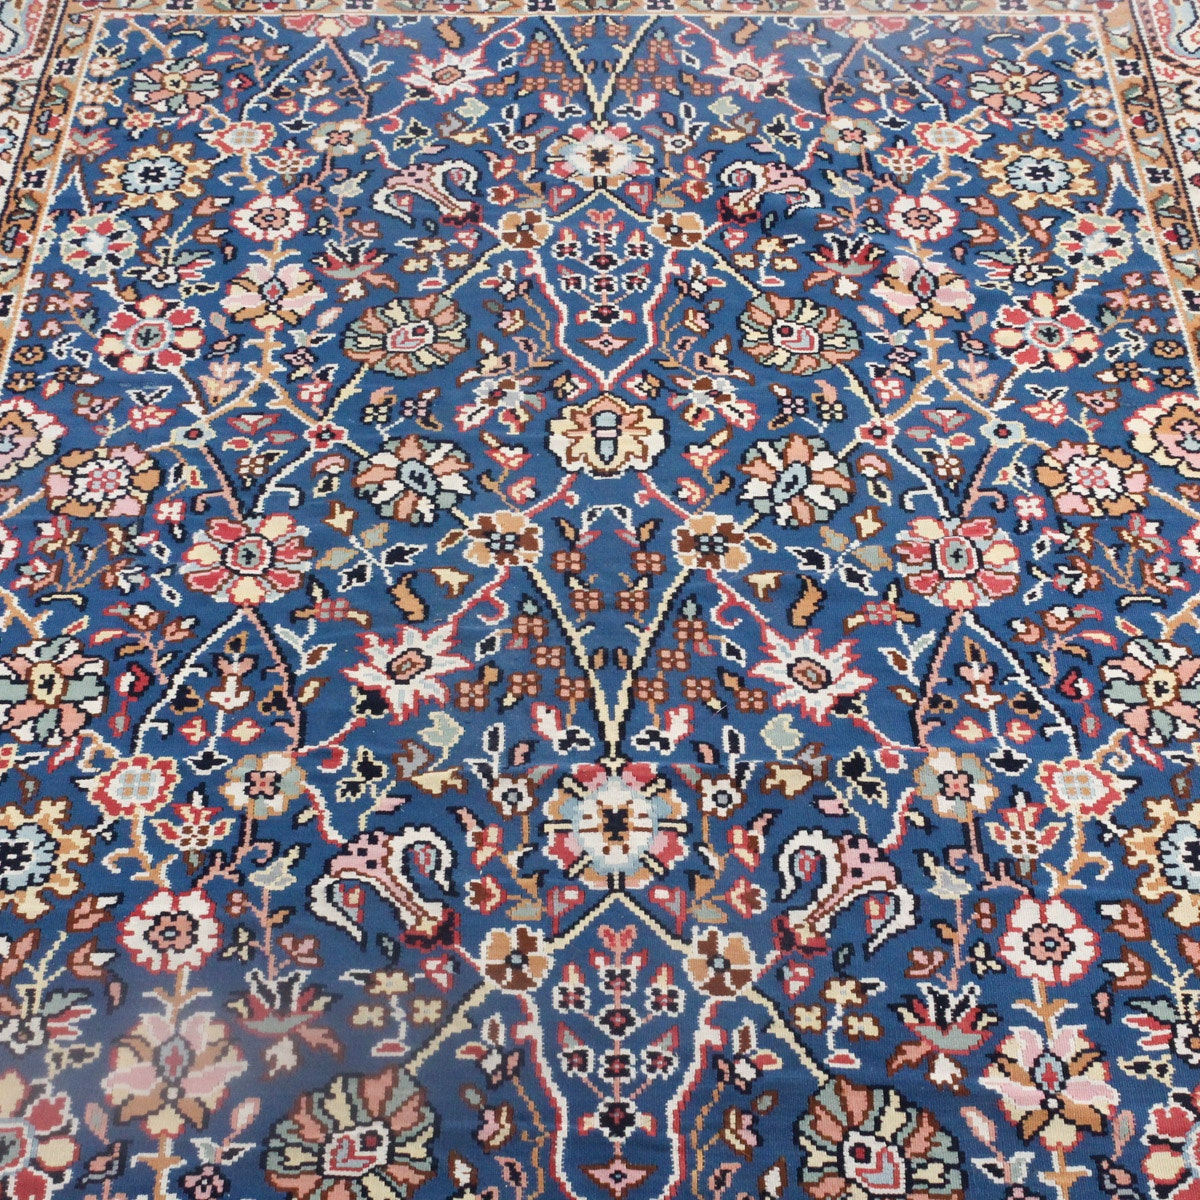 Persian Style Wool Area Rug Ebth: Hand-Knotted Persian-Style Wool Kilim : EBTH